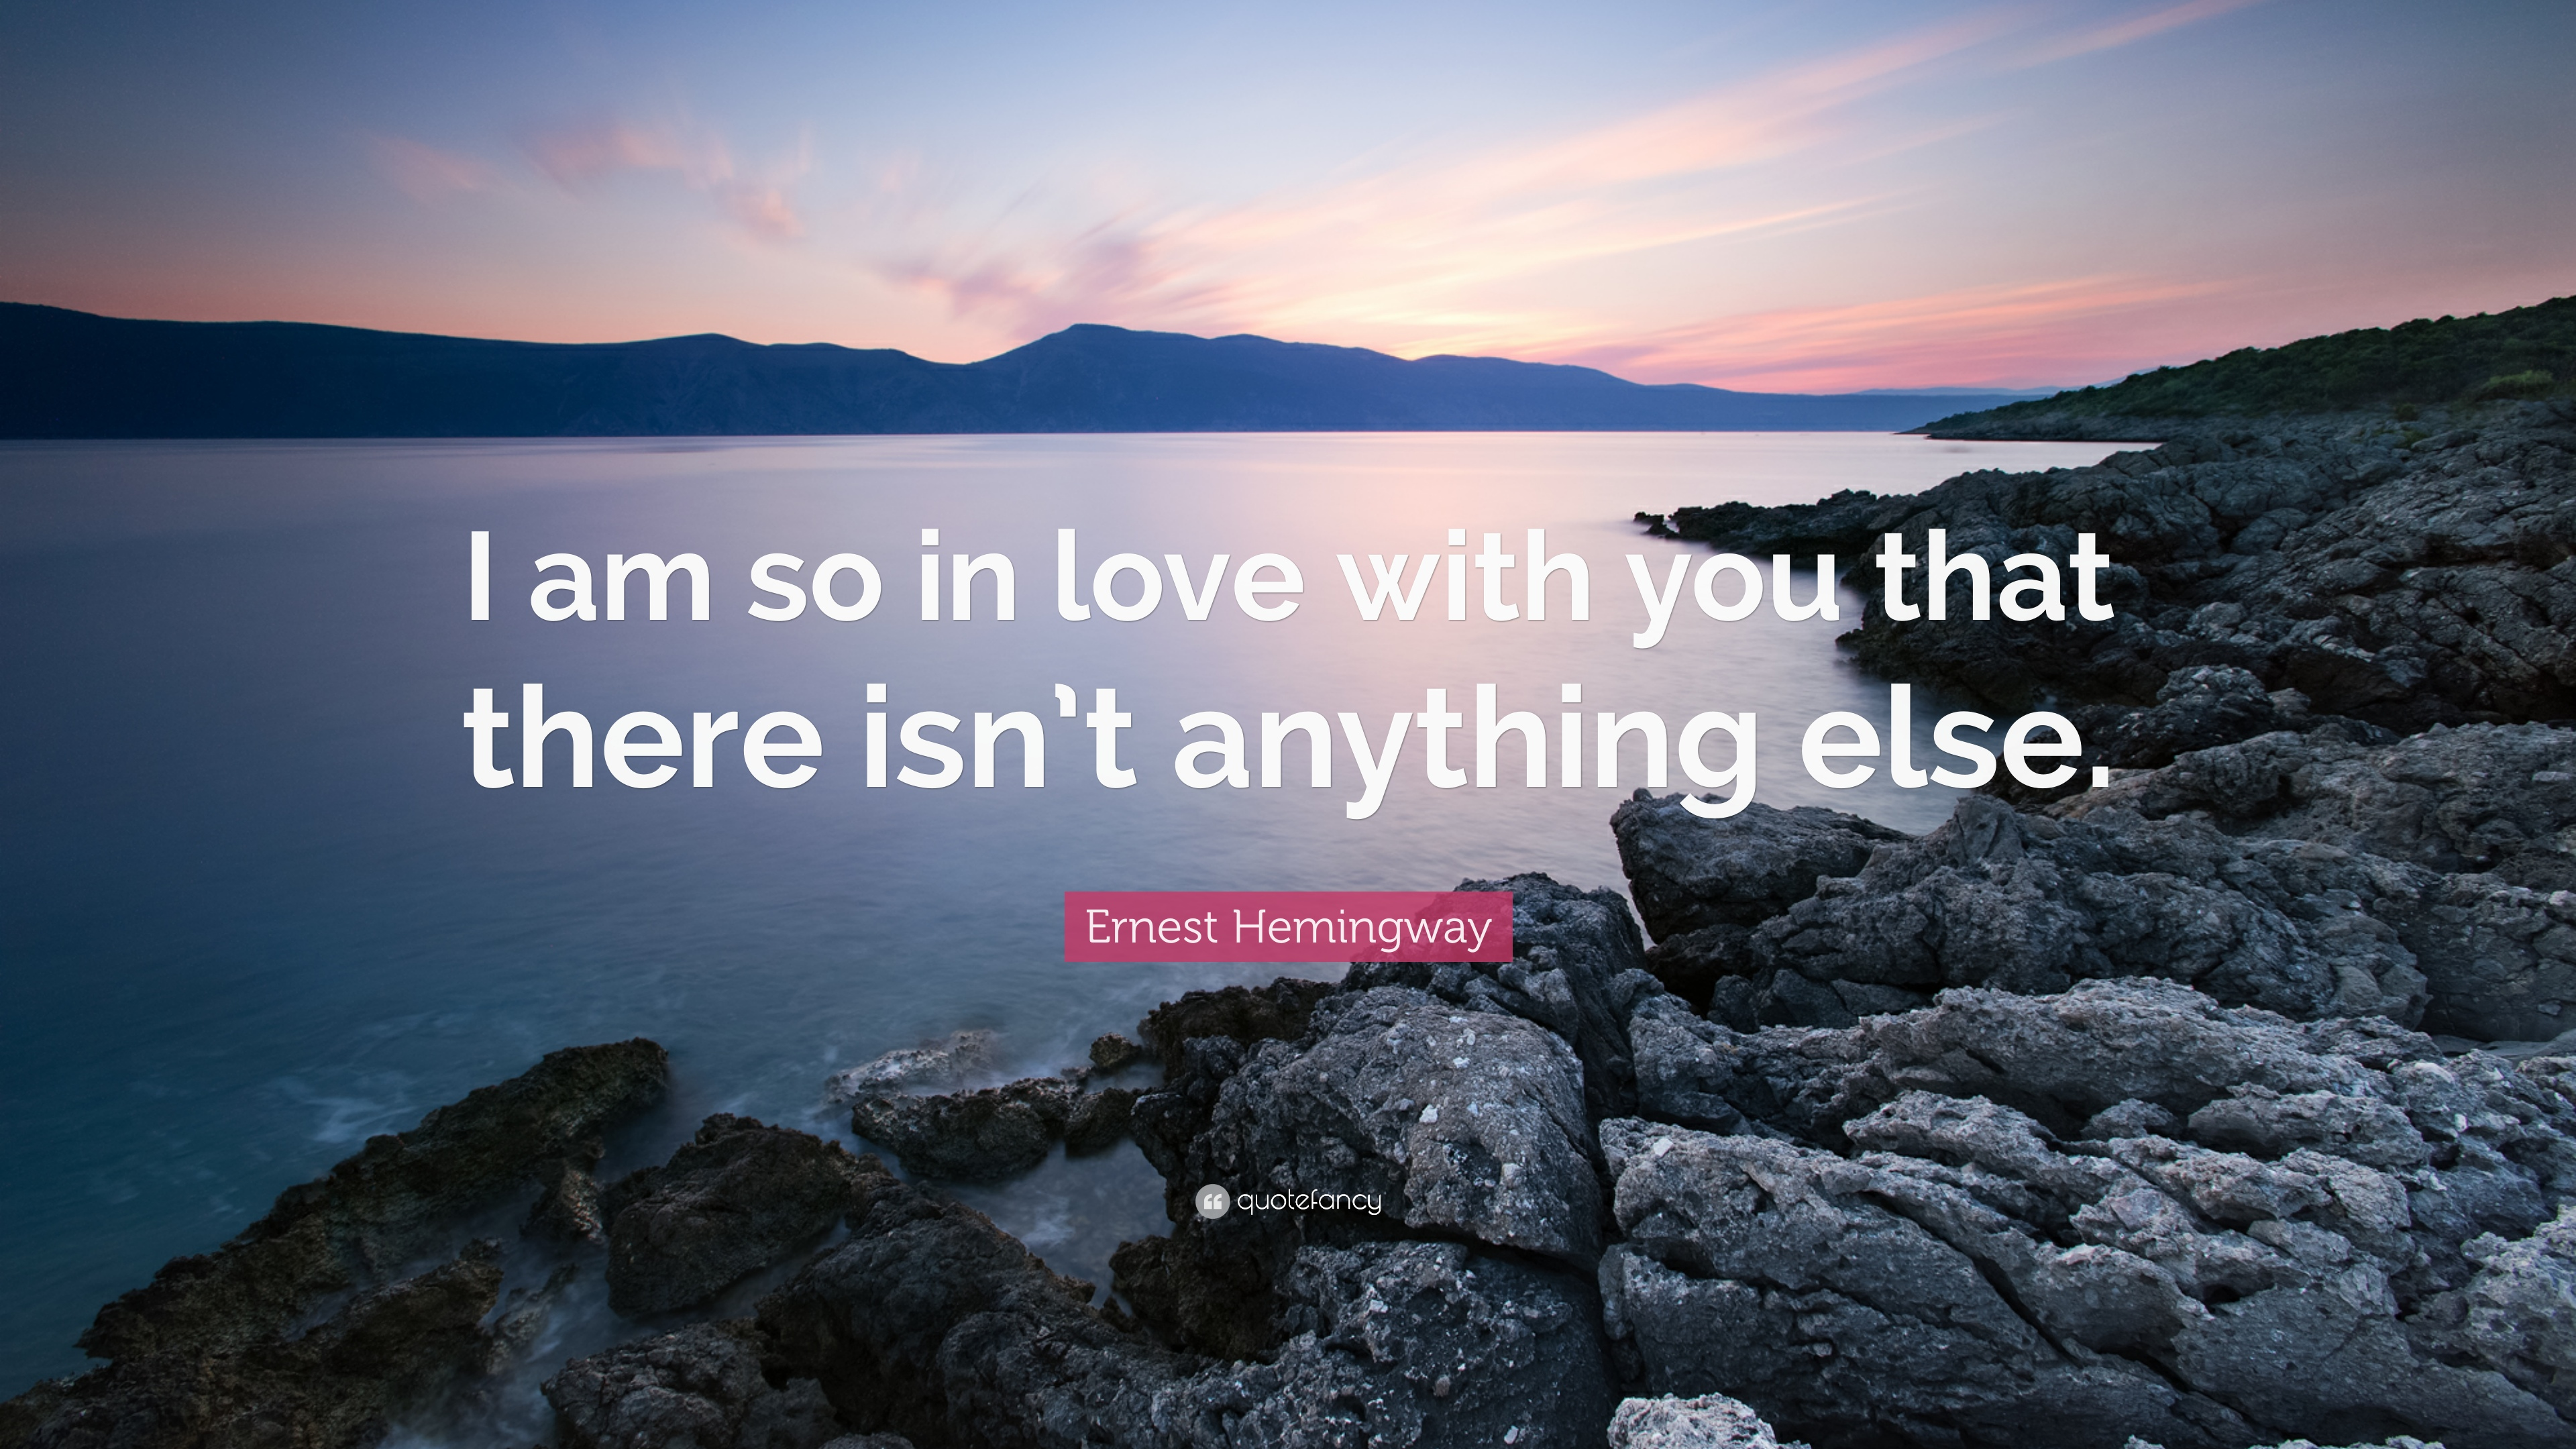 Ernest Hemingway Quote I Am So In Love With You That There Isnt